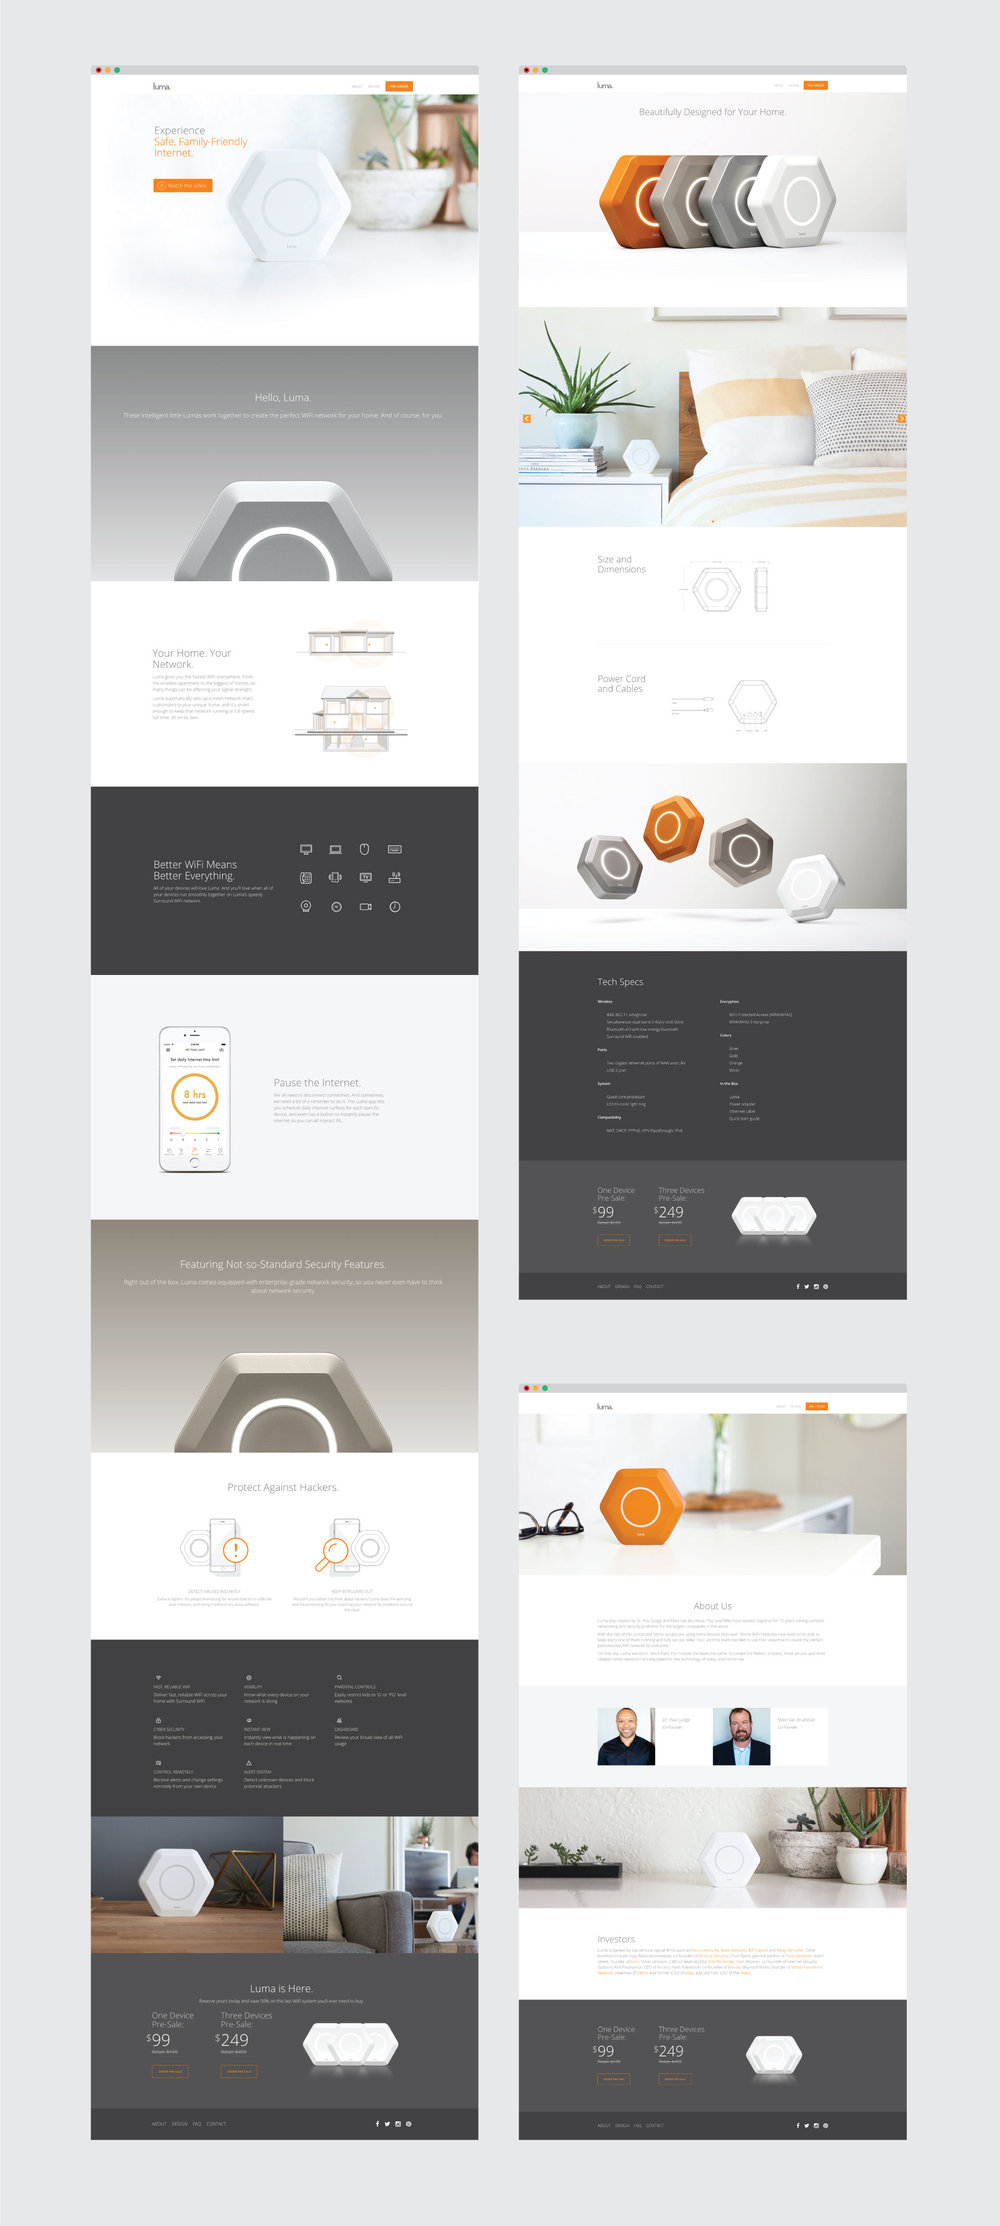 3_Luma_Website_Full_Layout_v2.jpg